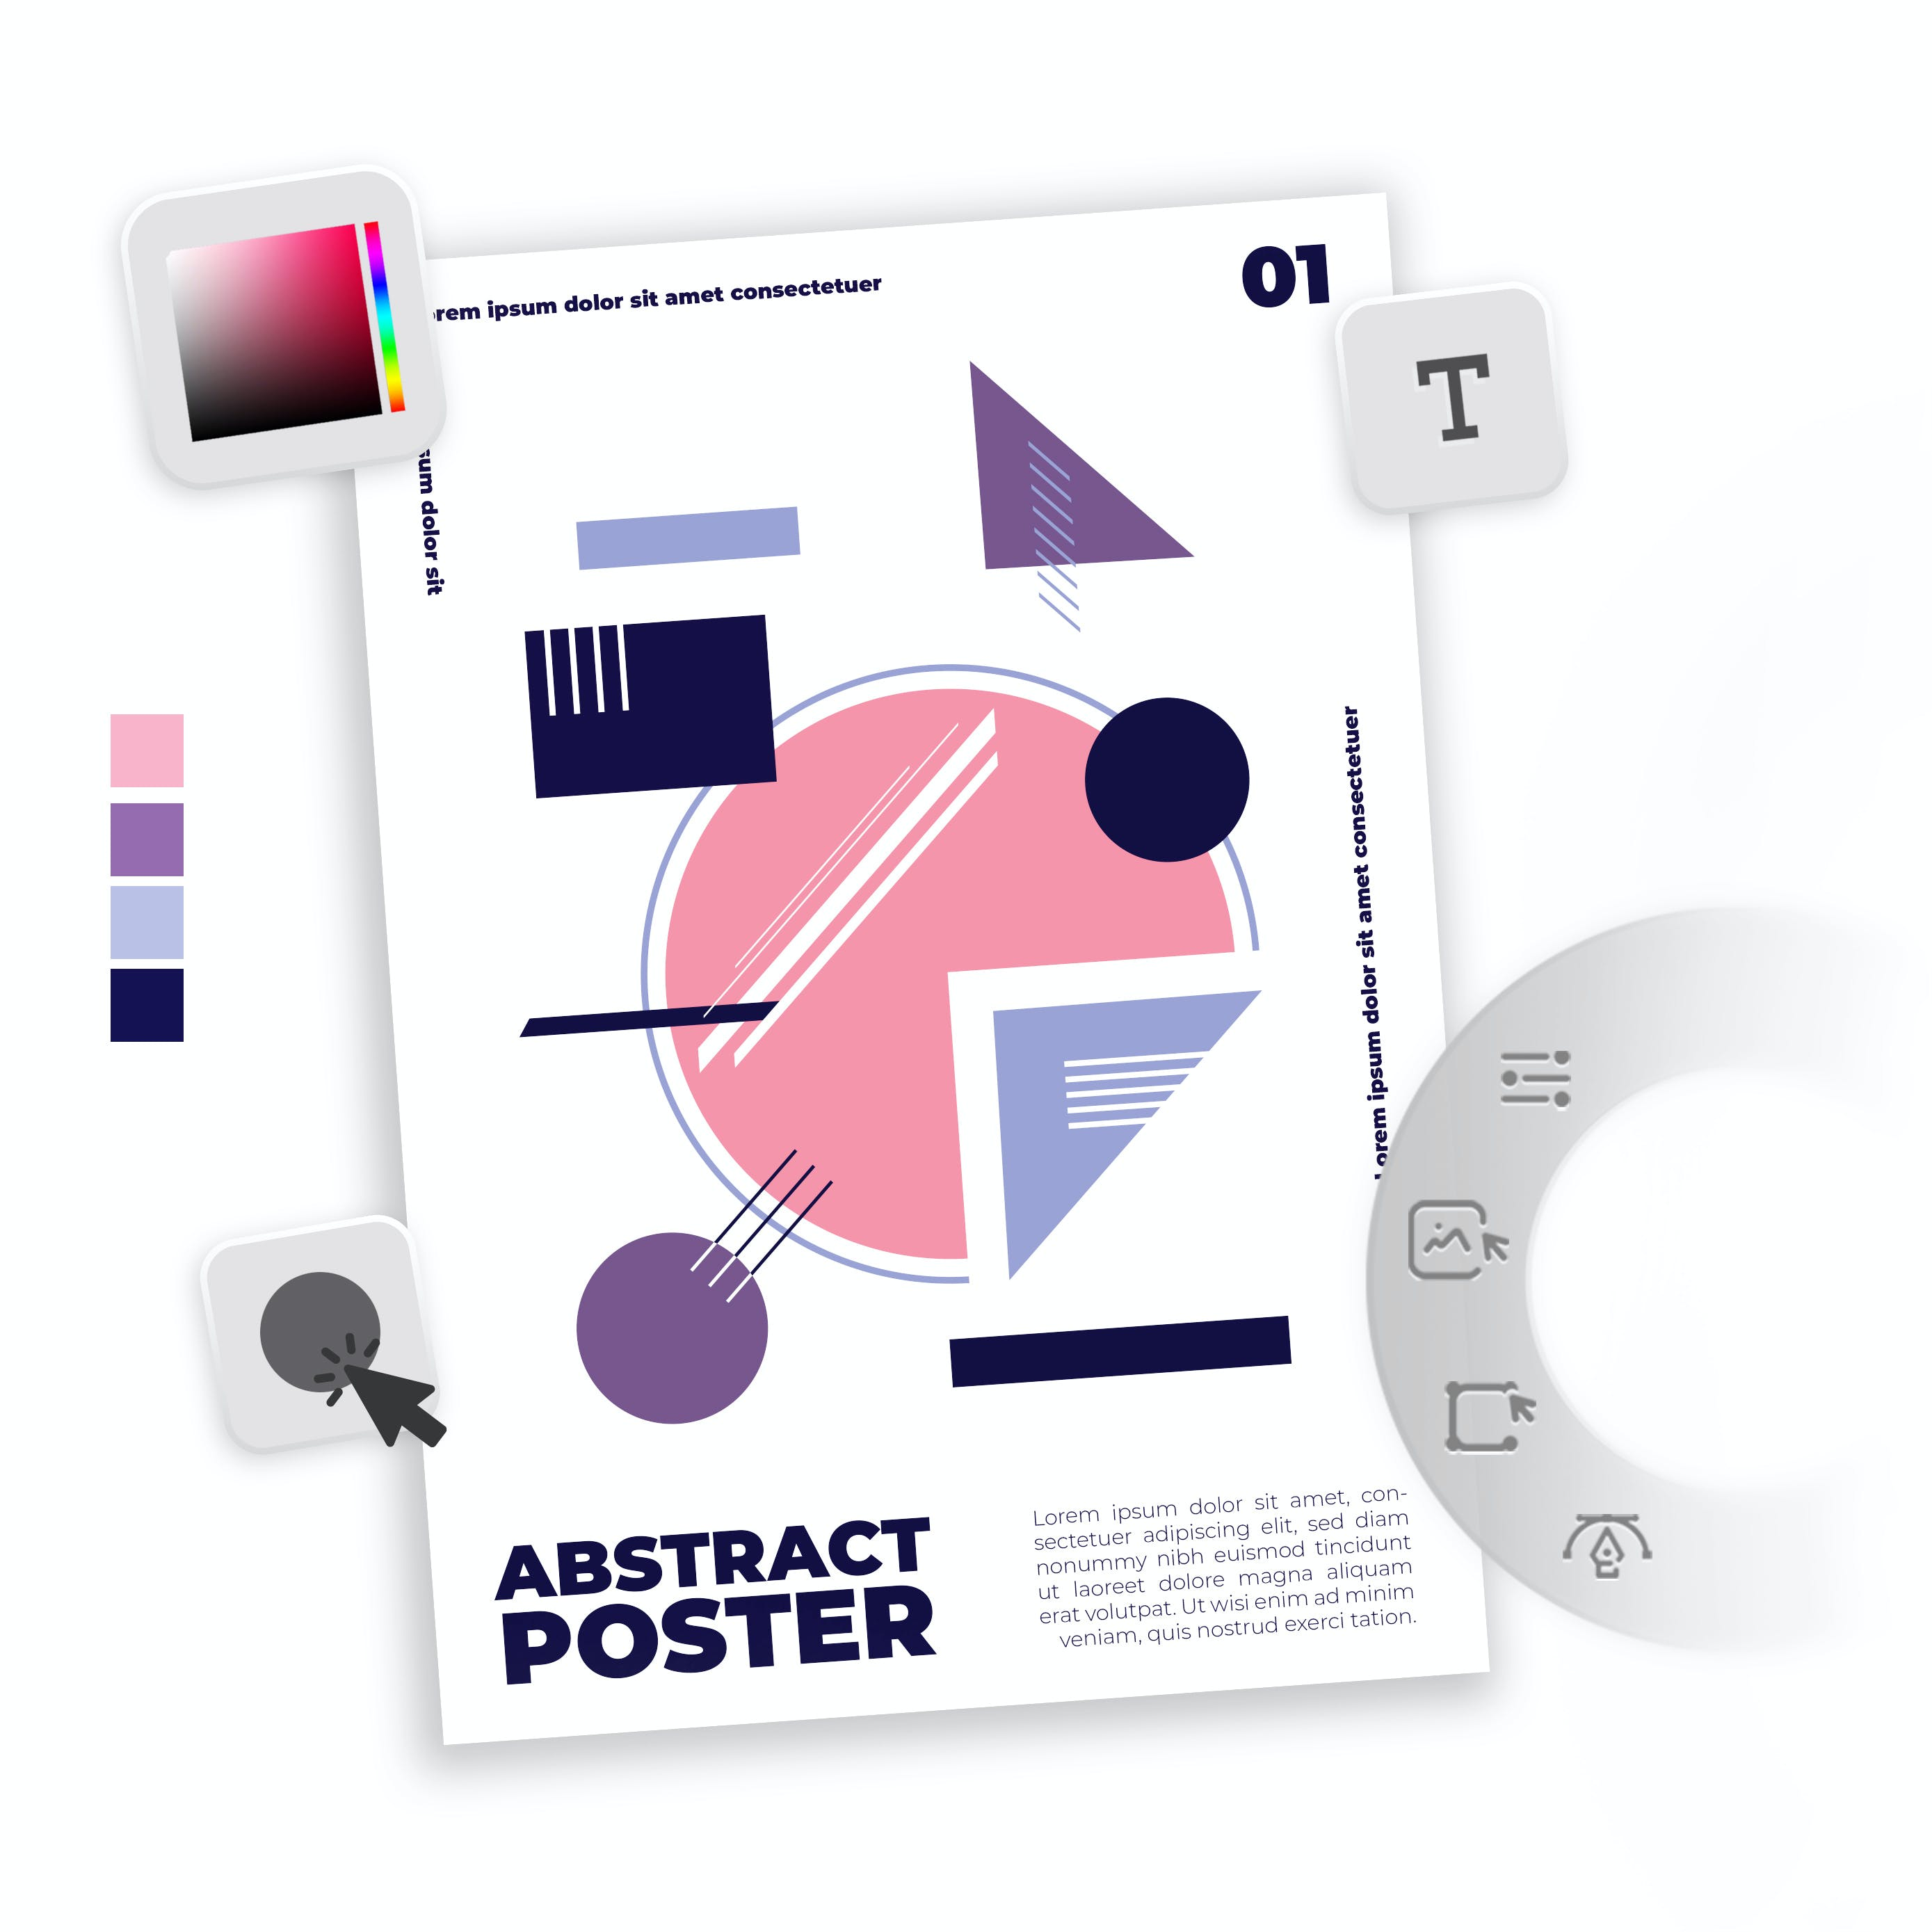 Image of poster maker tools